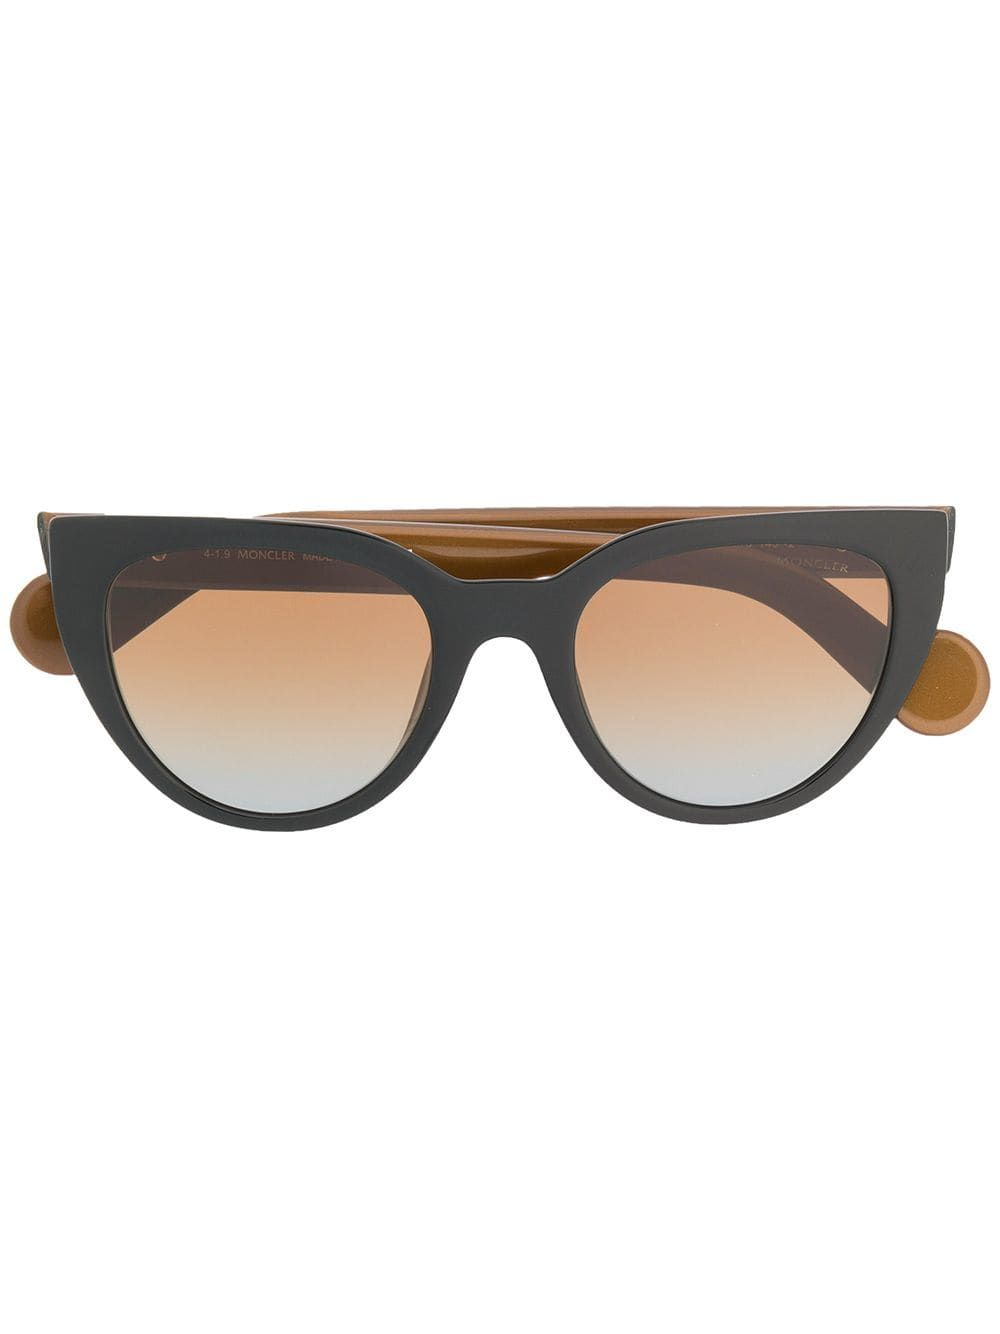 Just Right – Hosk for Chimi I Chimi Eyewear I Collaborations